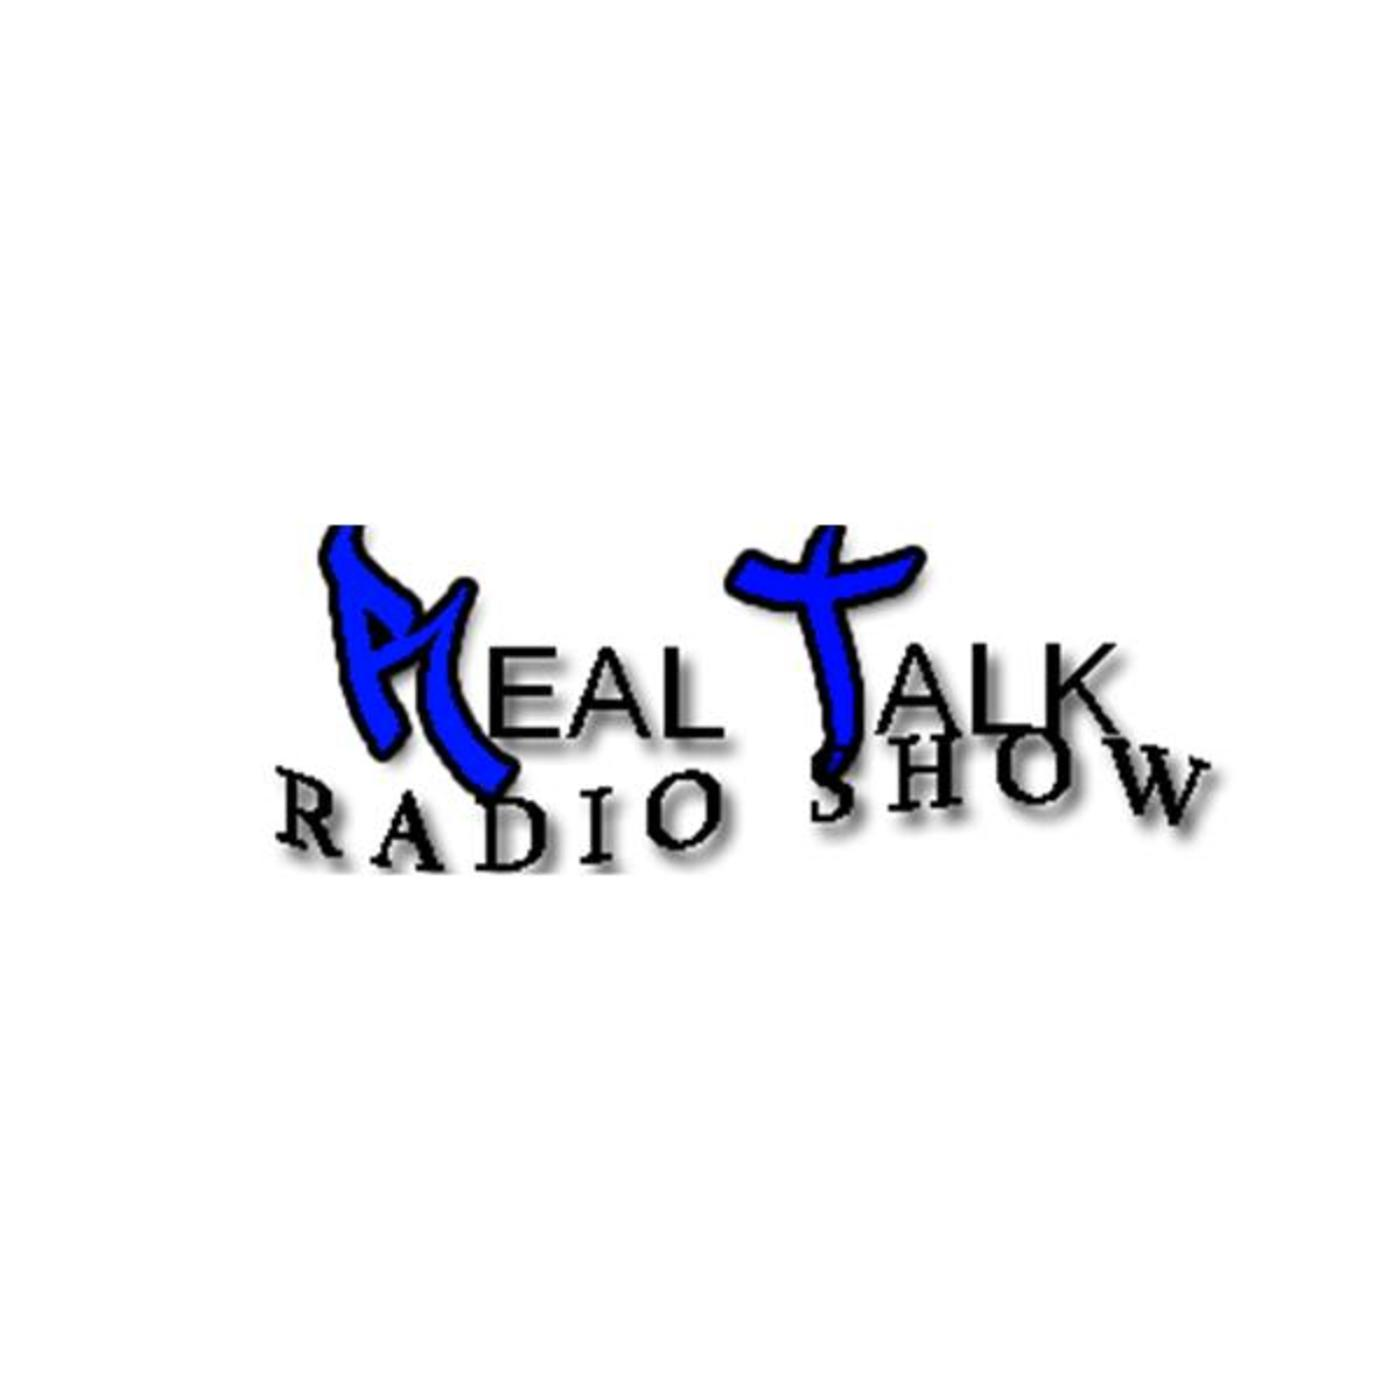 Real Talk Radio Show